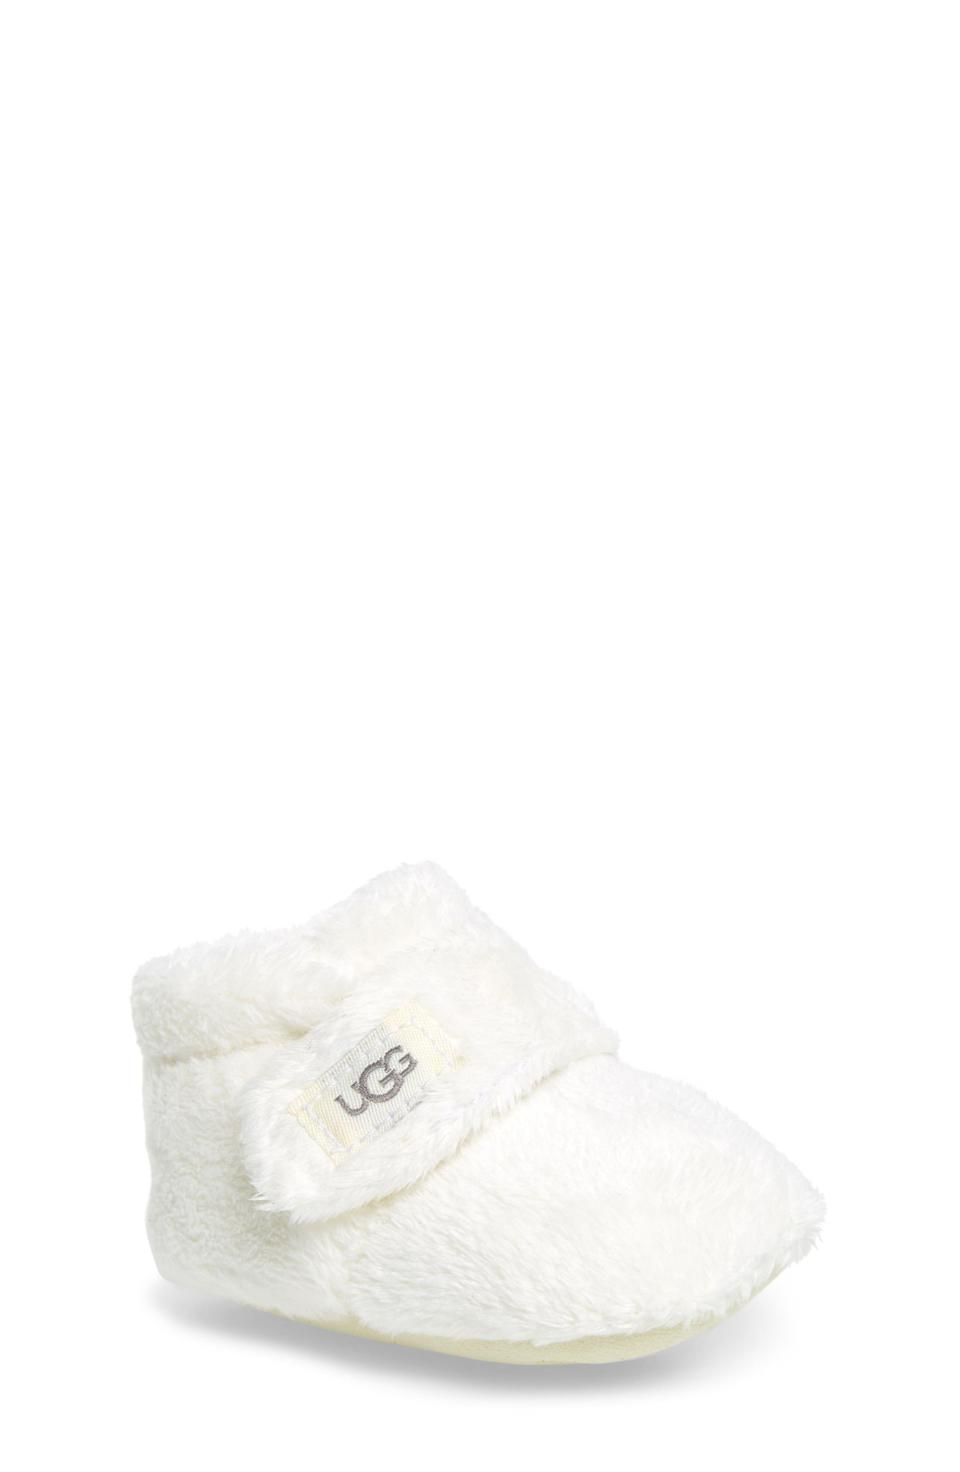 "<p><strong>UGG</strong></p><p>nordstrom.com</p><p><strong>$34.95</strong></p><p><a href=""https://go.redirectingat.com?id=74968X1596630&url=https%3A%2F%2Fwww.nordstrom.com%2Fs%2Fugg-bixbee-bootie-baby-walker%2F3181971&sref=https%3A%2F%2Fwww.townandcountrymag.com%2Fstyle%2Fhome-decor%2Fg33933277%2Fcozy-gifts%2F"" rel=""nofollow noopener"" target=""_blank"" data-ylk=""slk:Shop Now"" class=""link rapid-noclick-resp"">Shop Now</a></p><p>Have a new parent in your life? Spoil their little one this year with the softest of baby shoes from UGG.</p>"